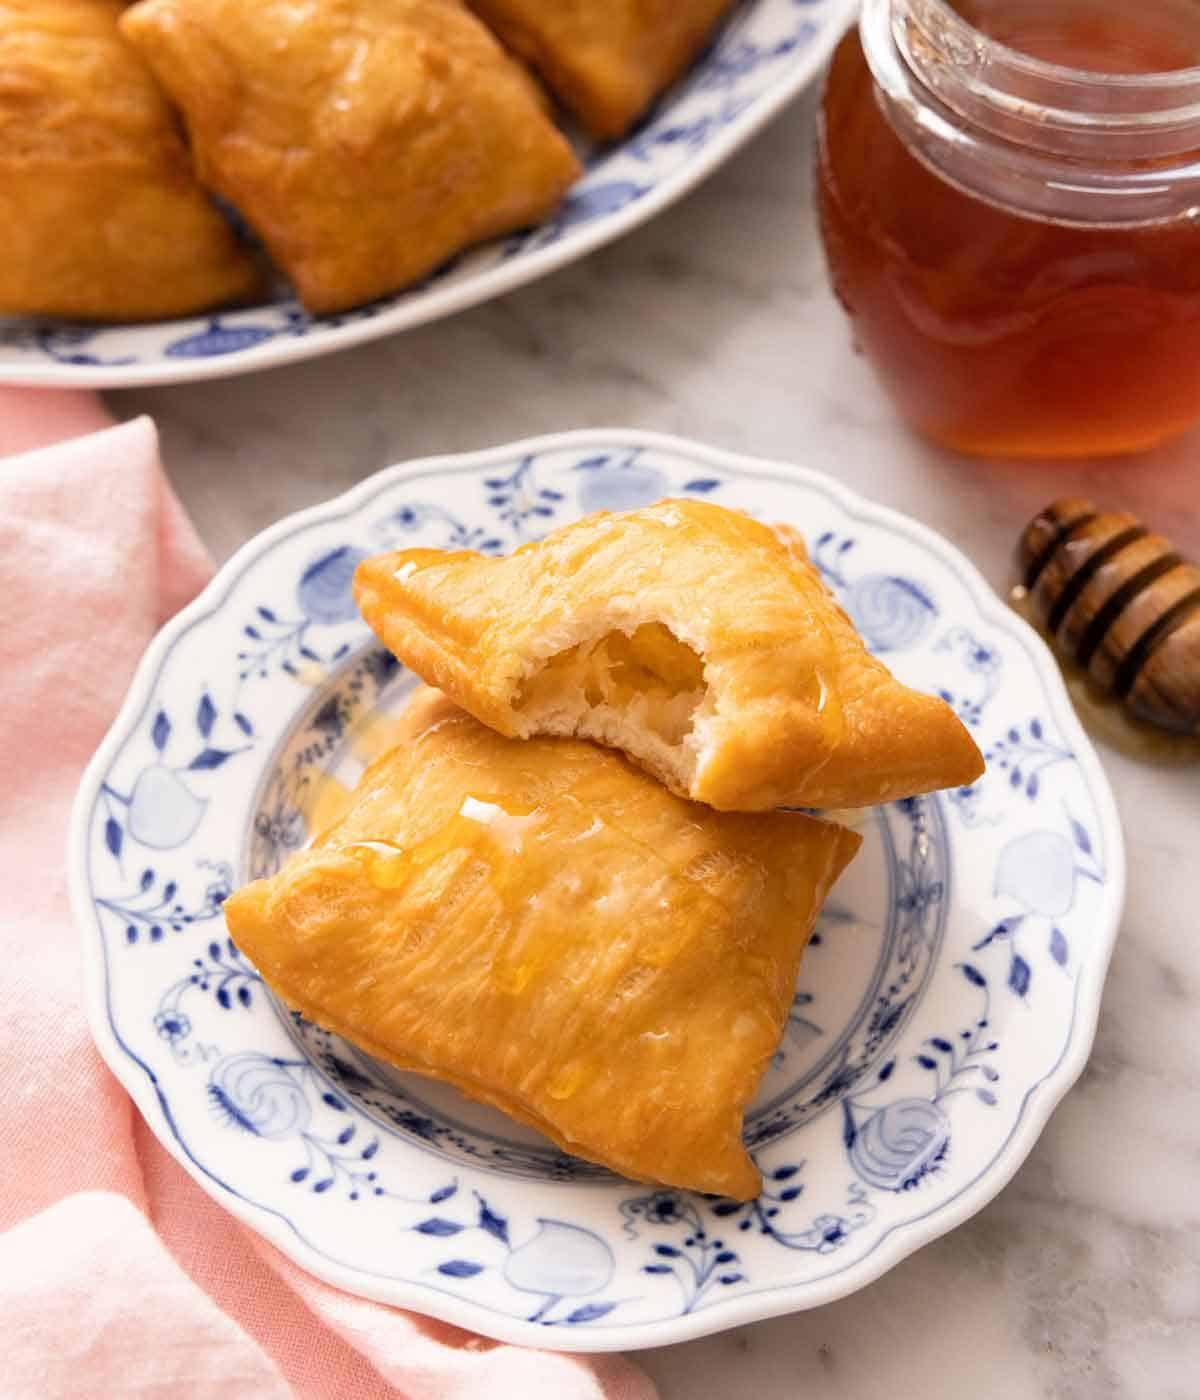 A plate with two sopapillas, one with a bite taken out of it. A jar of honey and more sopapillas in the back.